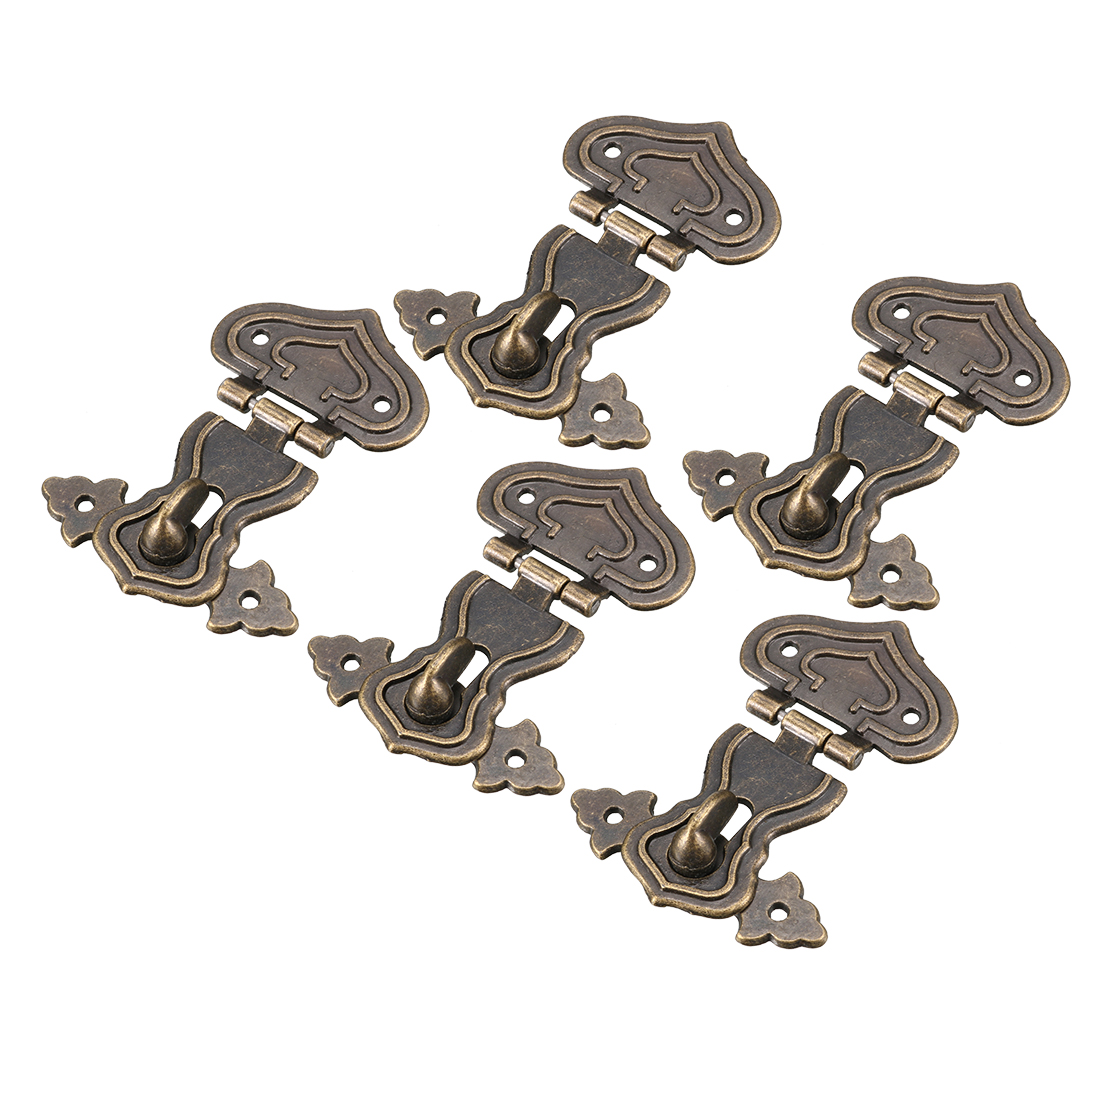 5 Pcs 64mmx48mm Retro Style Bronze Tone Heart Shape Box Hasp Latch Lock